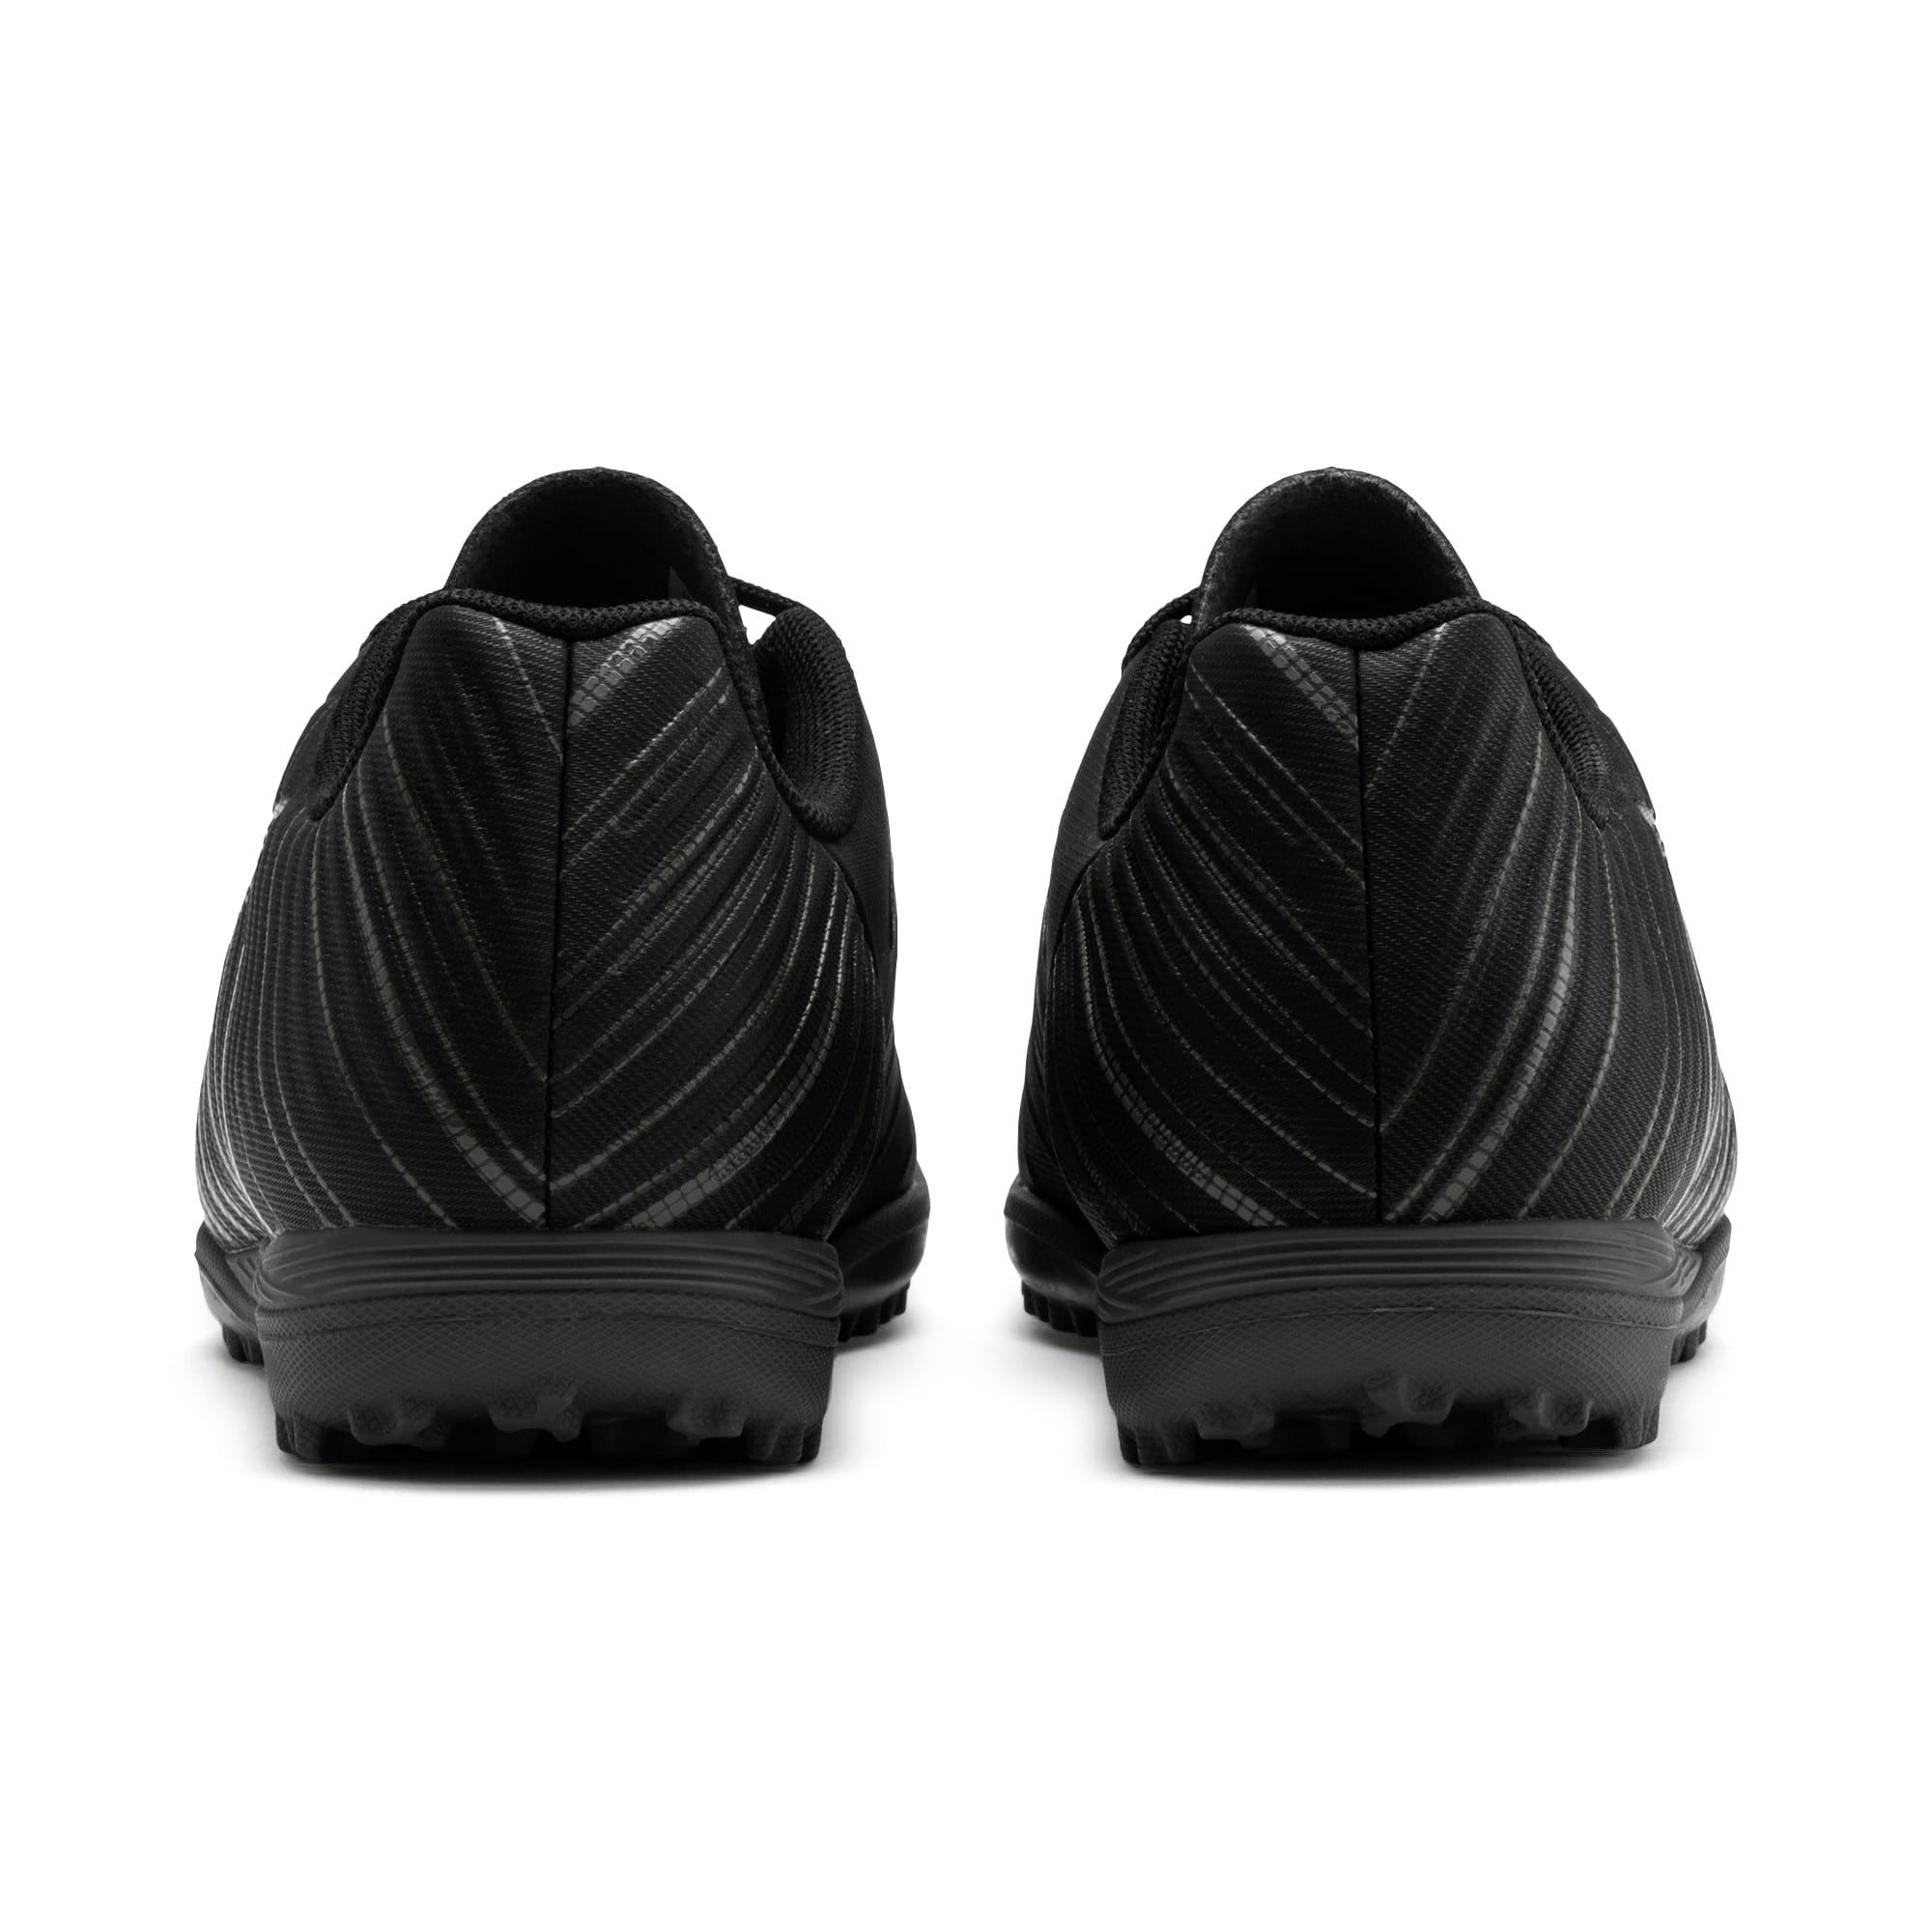 Thumbnail 3 of PUMA ONE 5.4 TT Youth Football Boots, Black-Black-Puma Aged Silver, medium